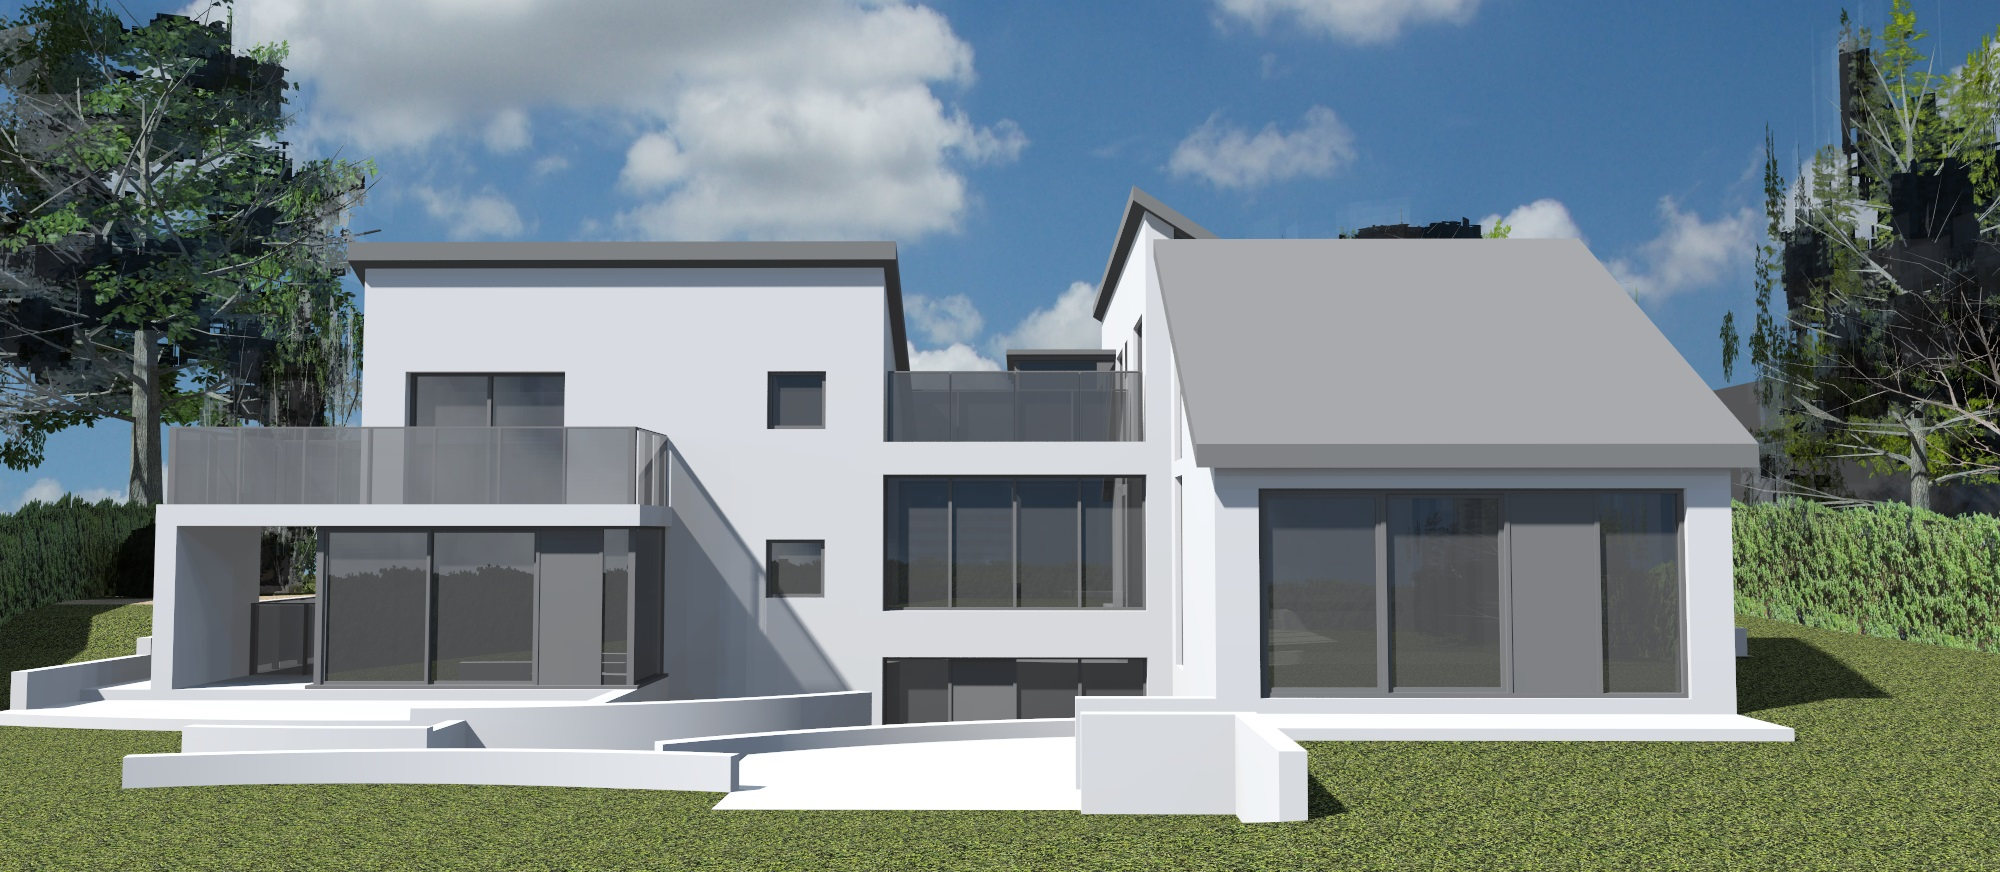 3d model, hillcrest, mono pitch roof, 3 storey house, architecture, design